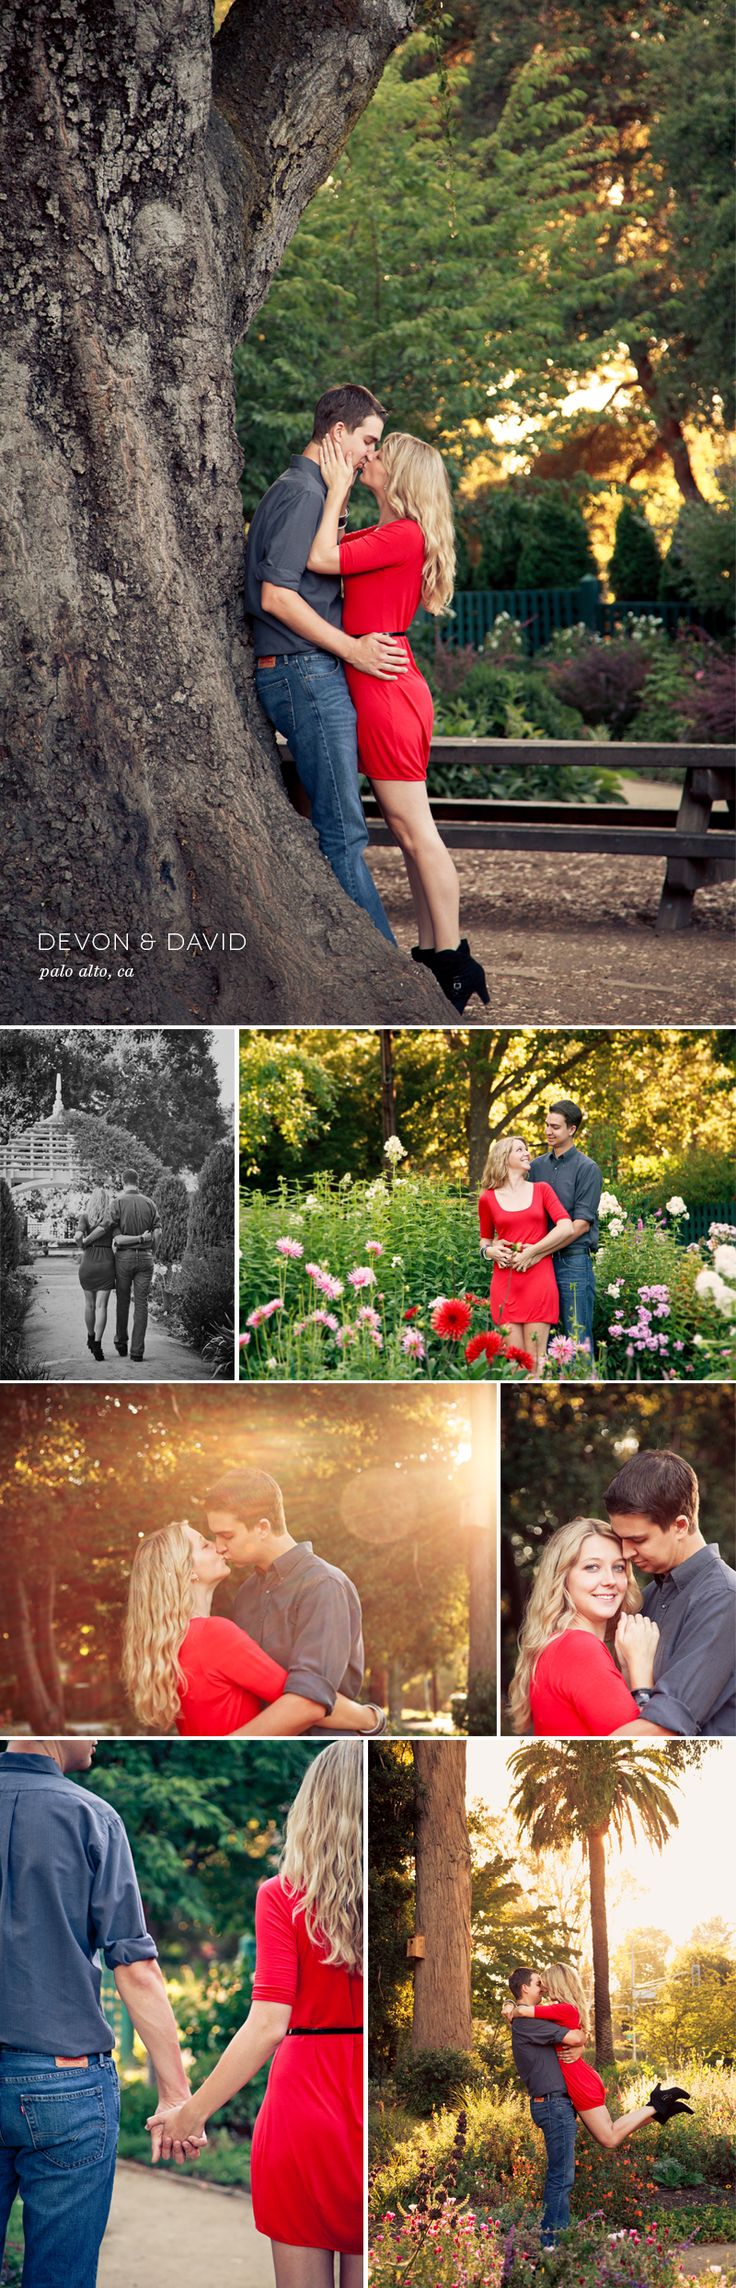 Garden Engagement Photo Session